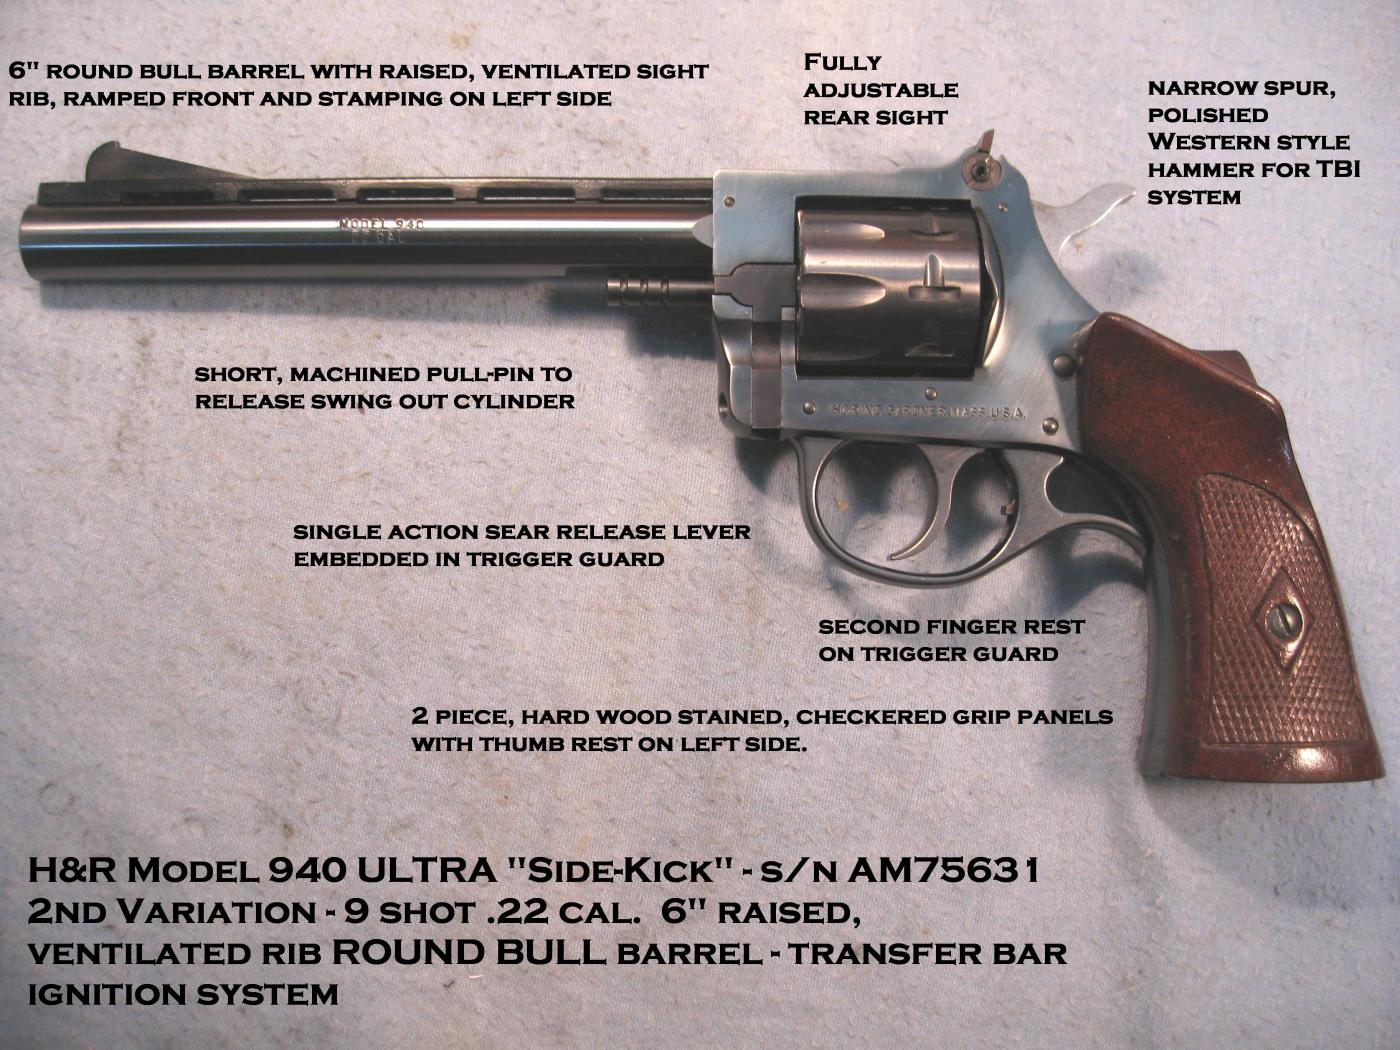 H & R Model 940 year? | The Firearms Forum - The Buying, Selling or